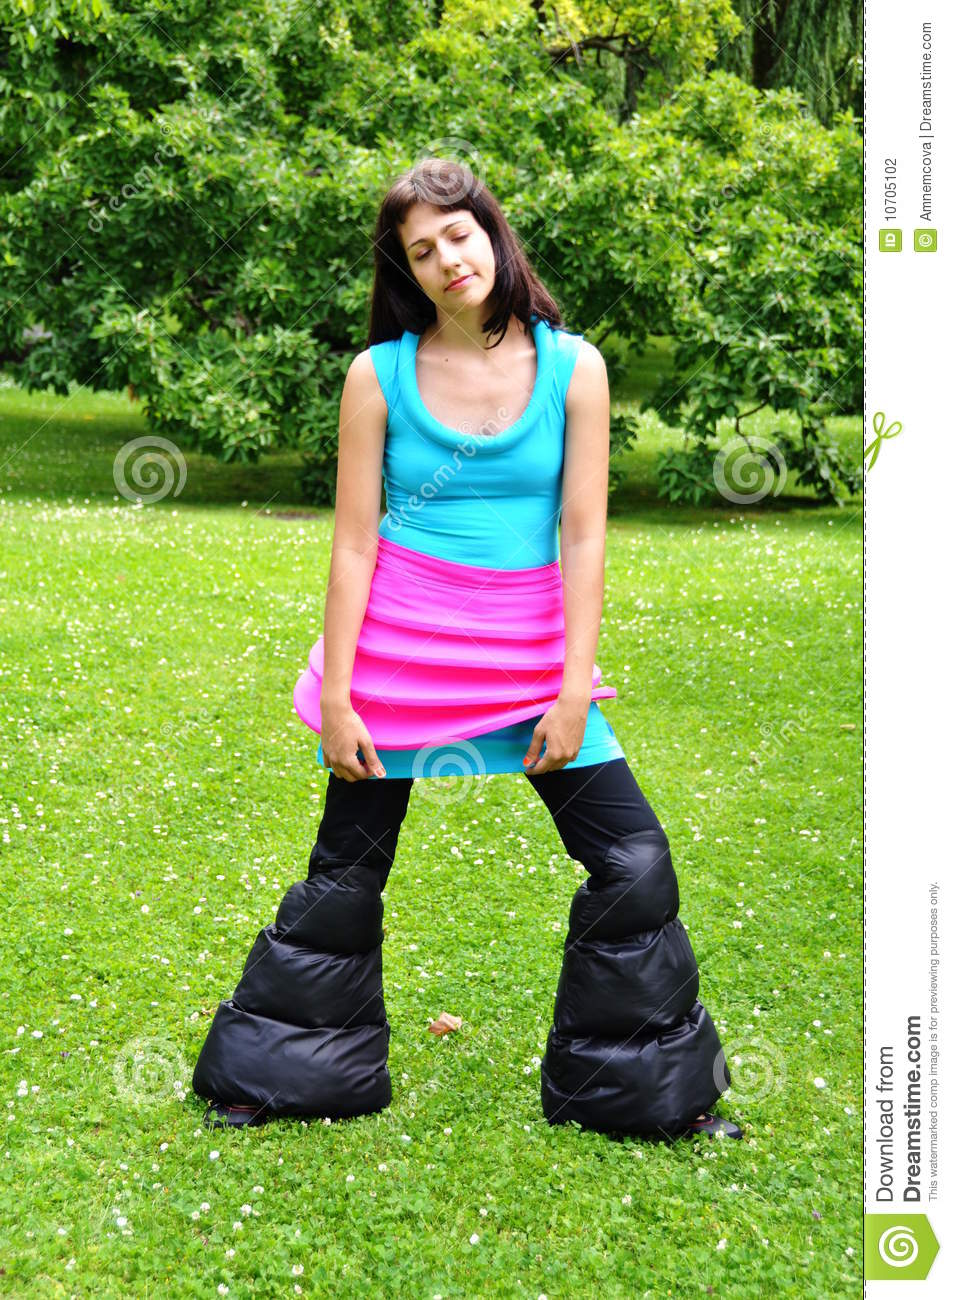 Crazy Outfit Stock Photography - Image 10705102